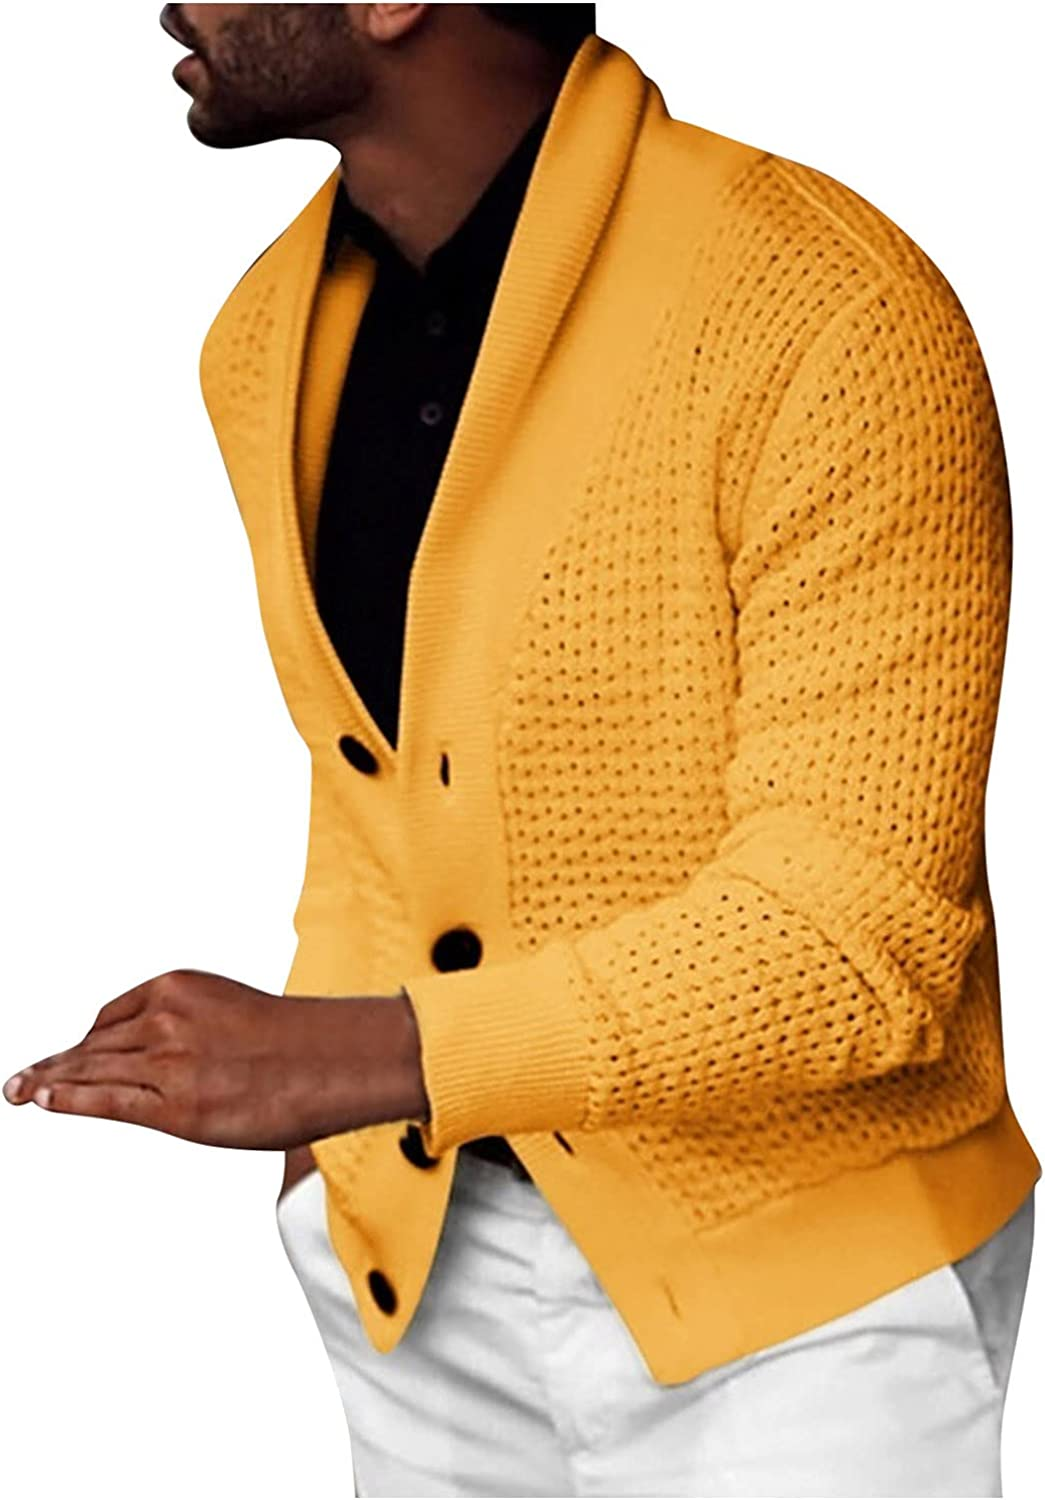 Huangse Men's Cable Knitted Sweaters Ruffle Shawl Collar Cardigan Lightweight Wool Blend Drape Cape Overcoat V Neck Sweater